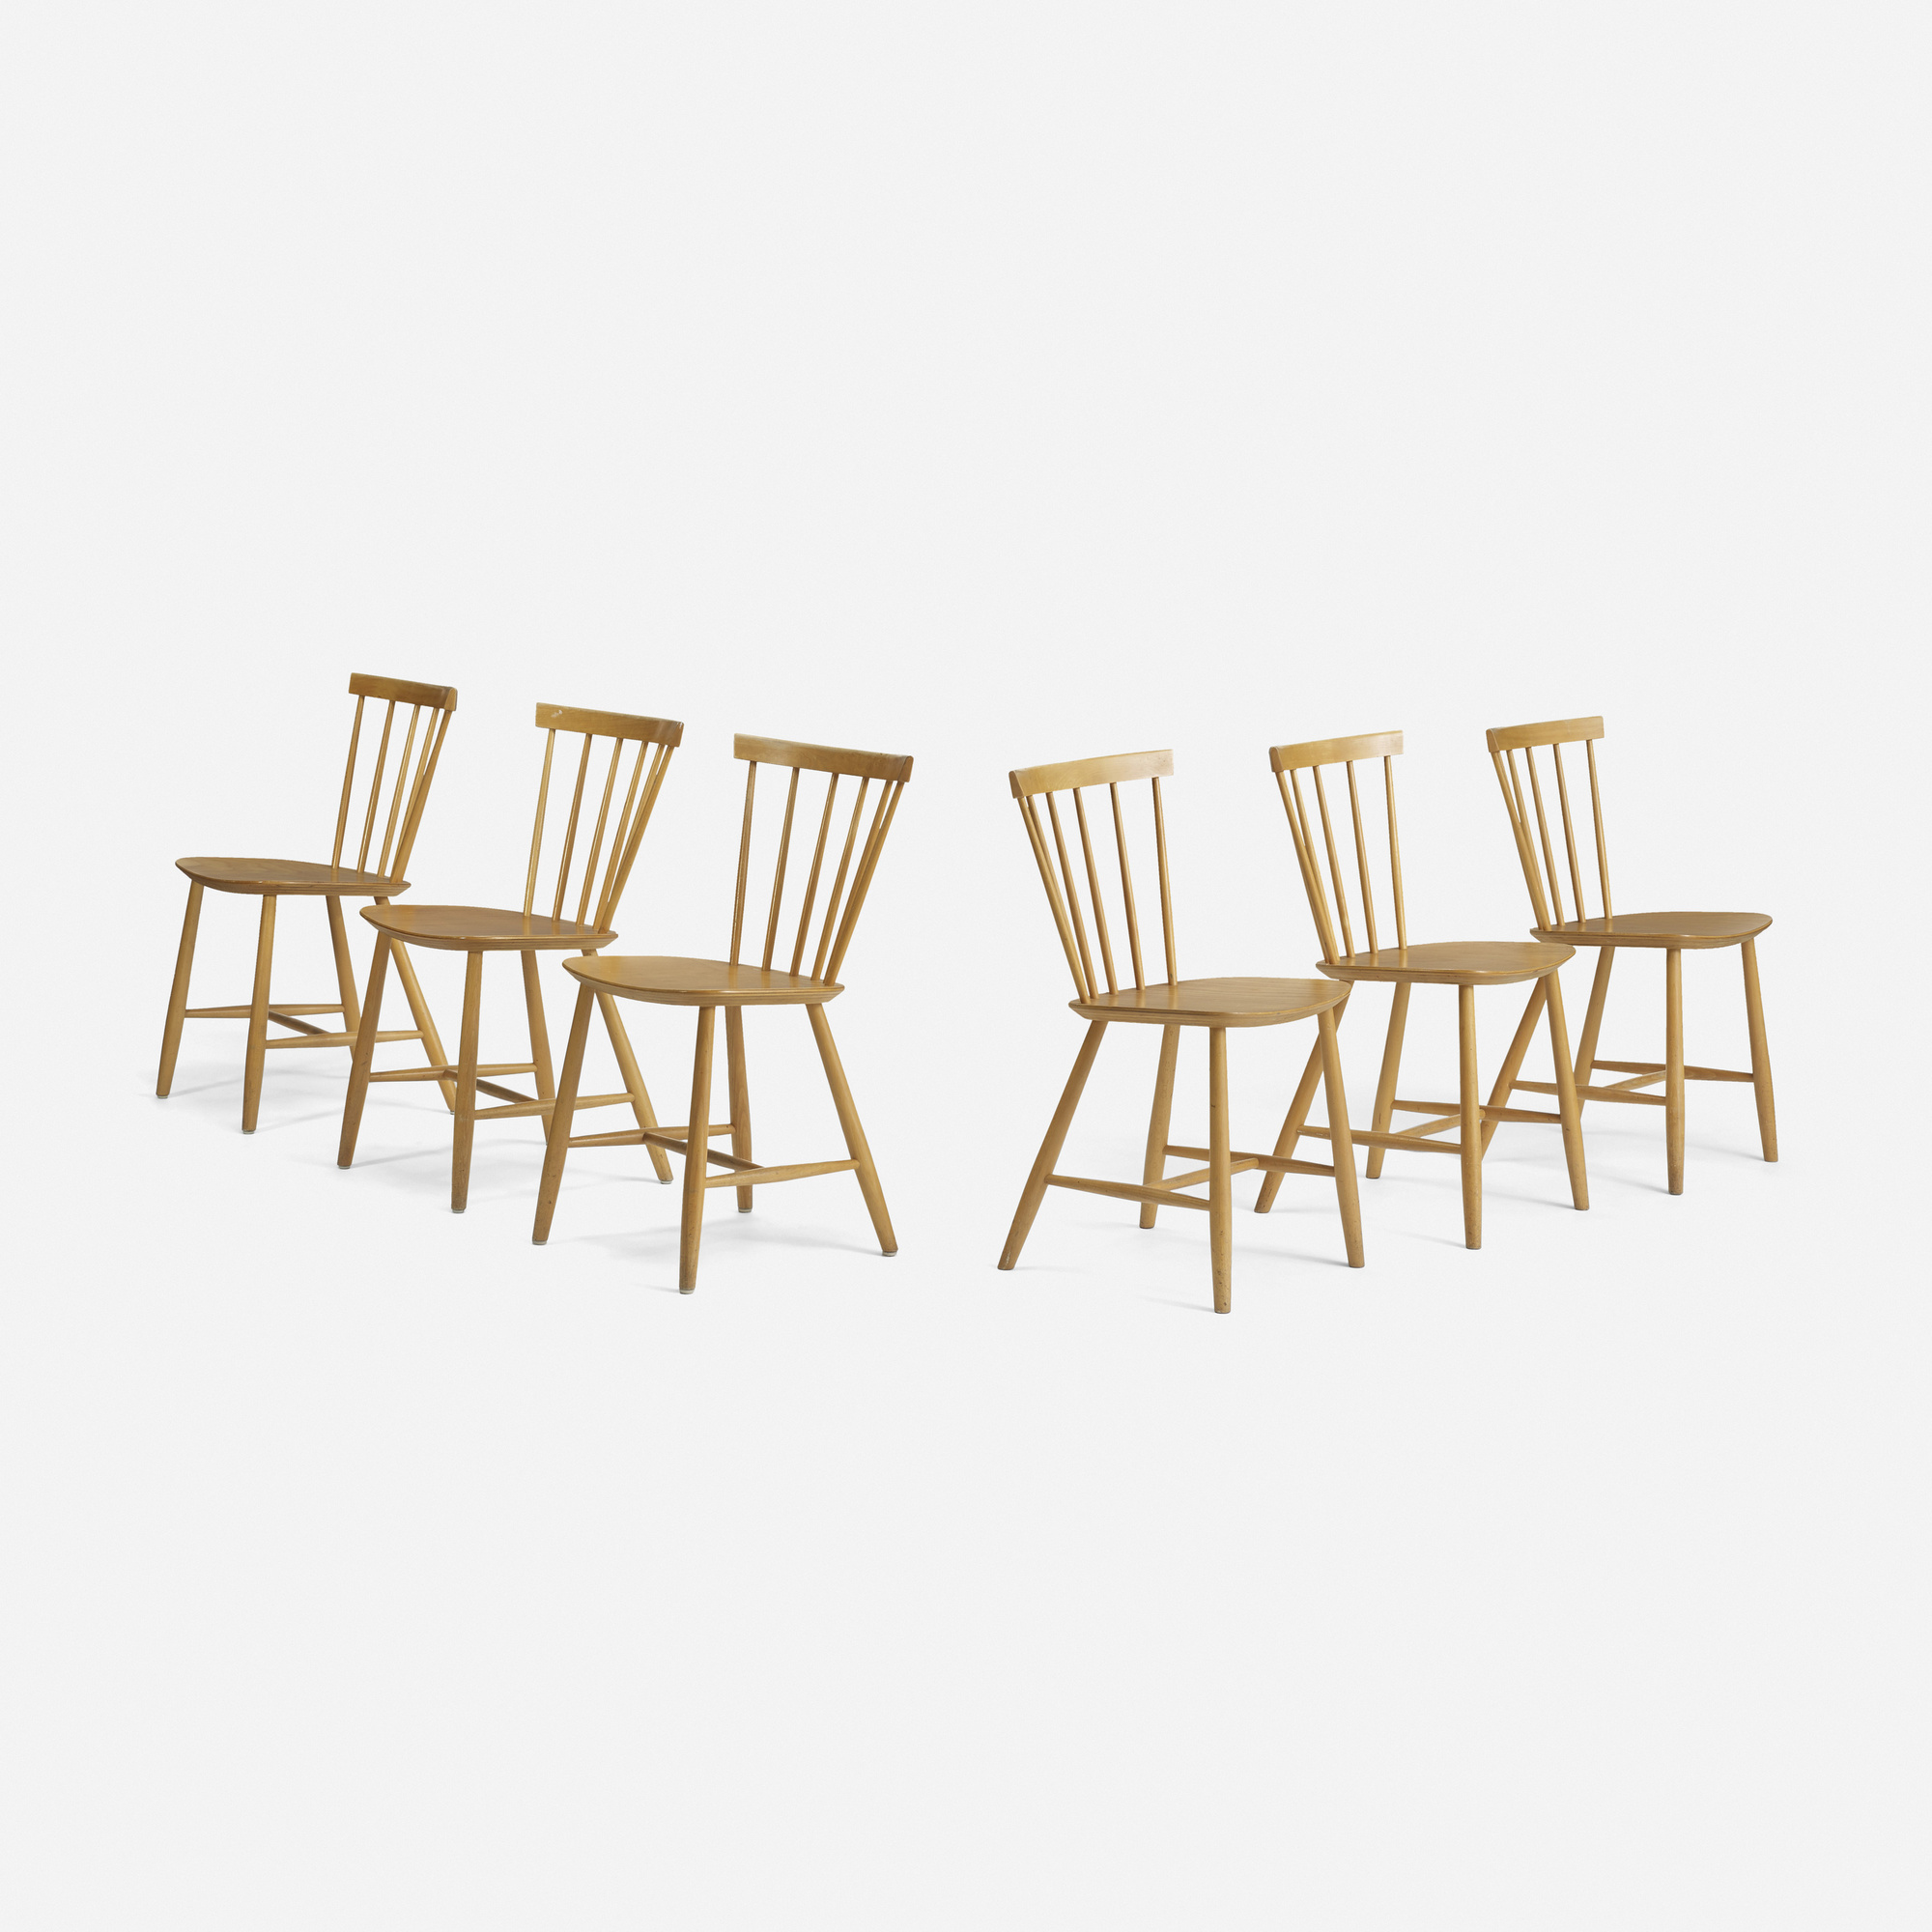 279: Poul Volther / dining chairs model J46, set of six (2 of 4)